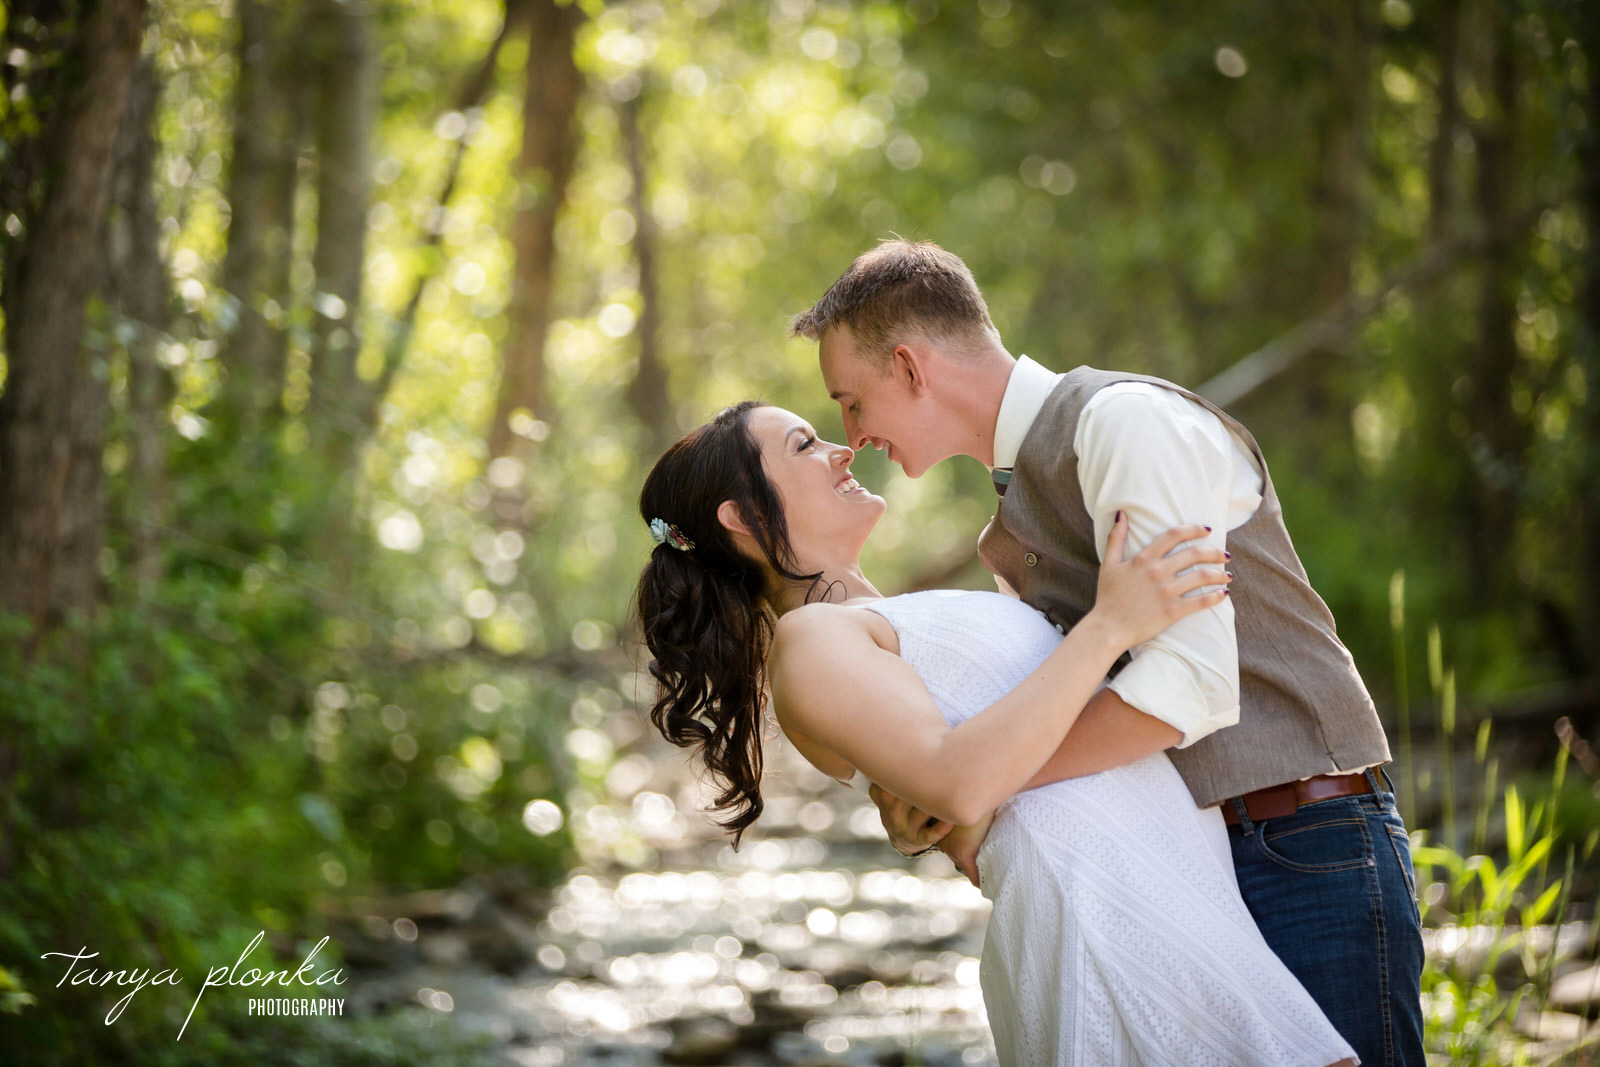 groom dips bride in front of out of focus stream in forest